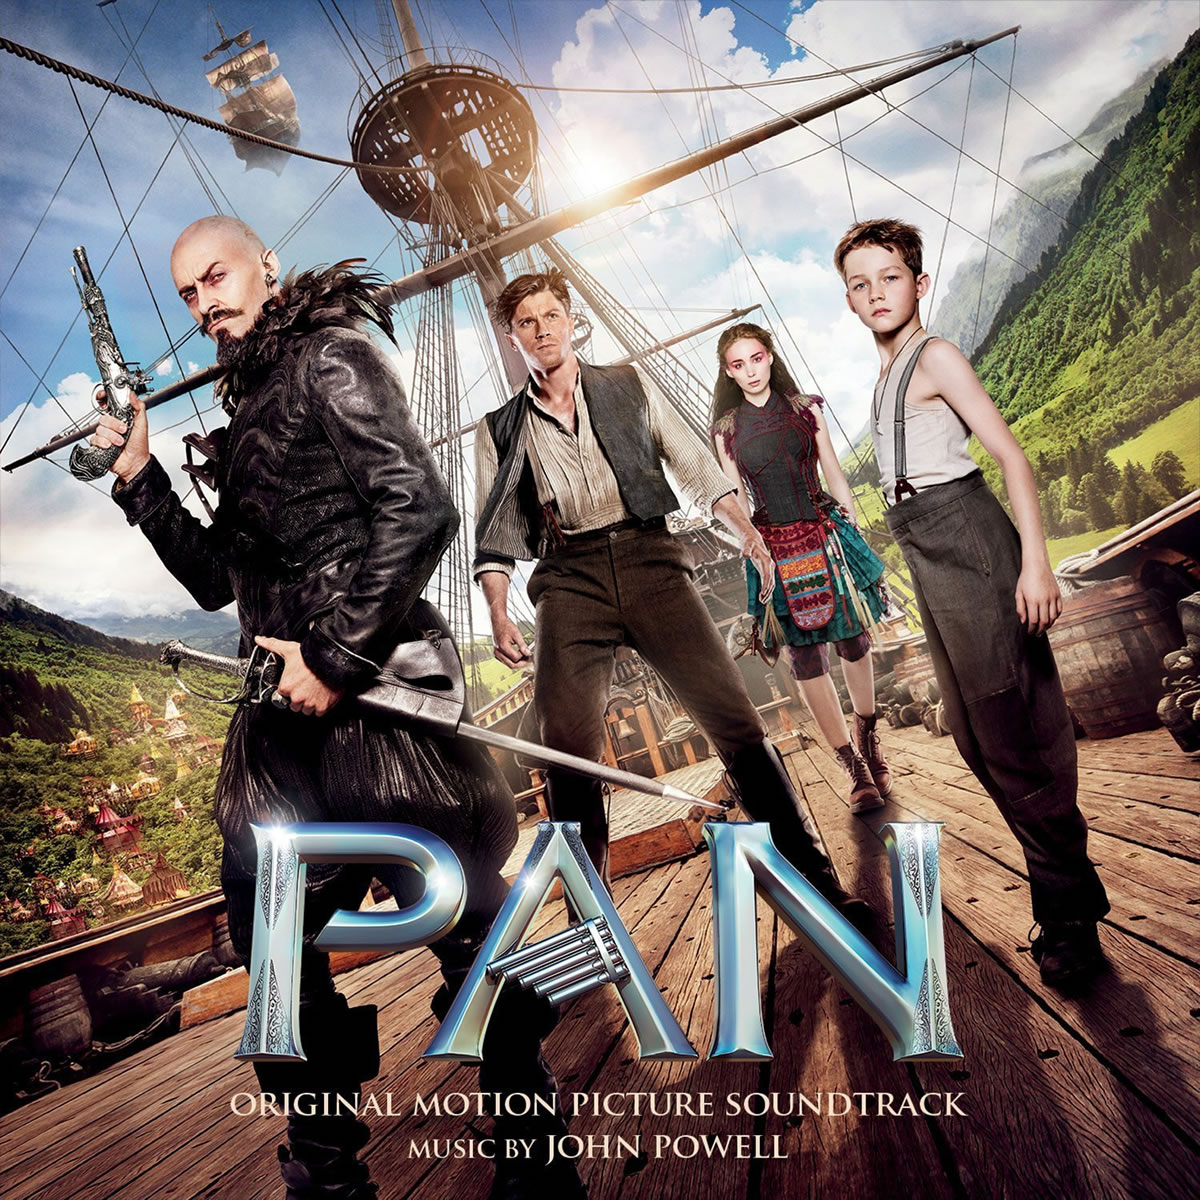 PAN  - THE ORIGINAL MOTION PICTURE SOUNDTRACK (AUDIO CD)